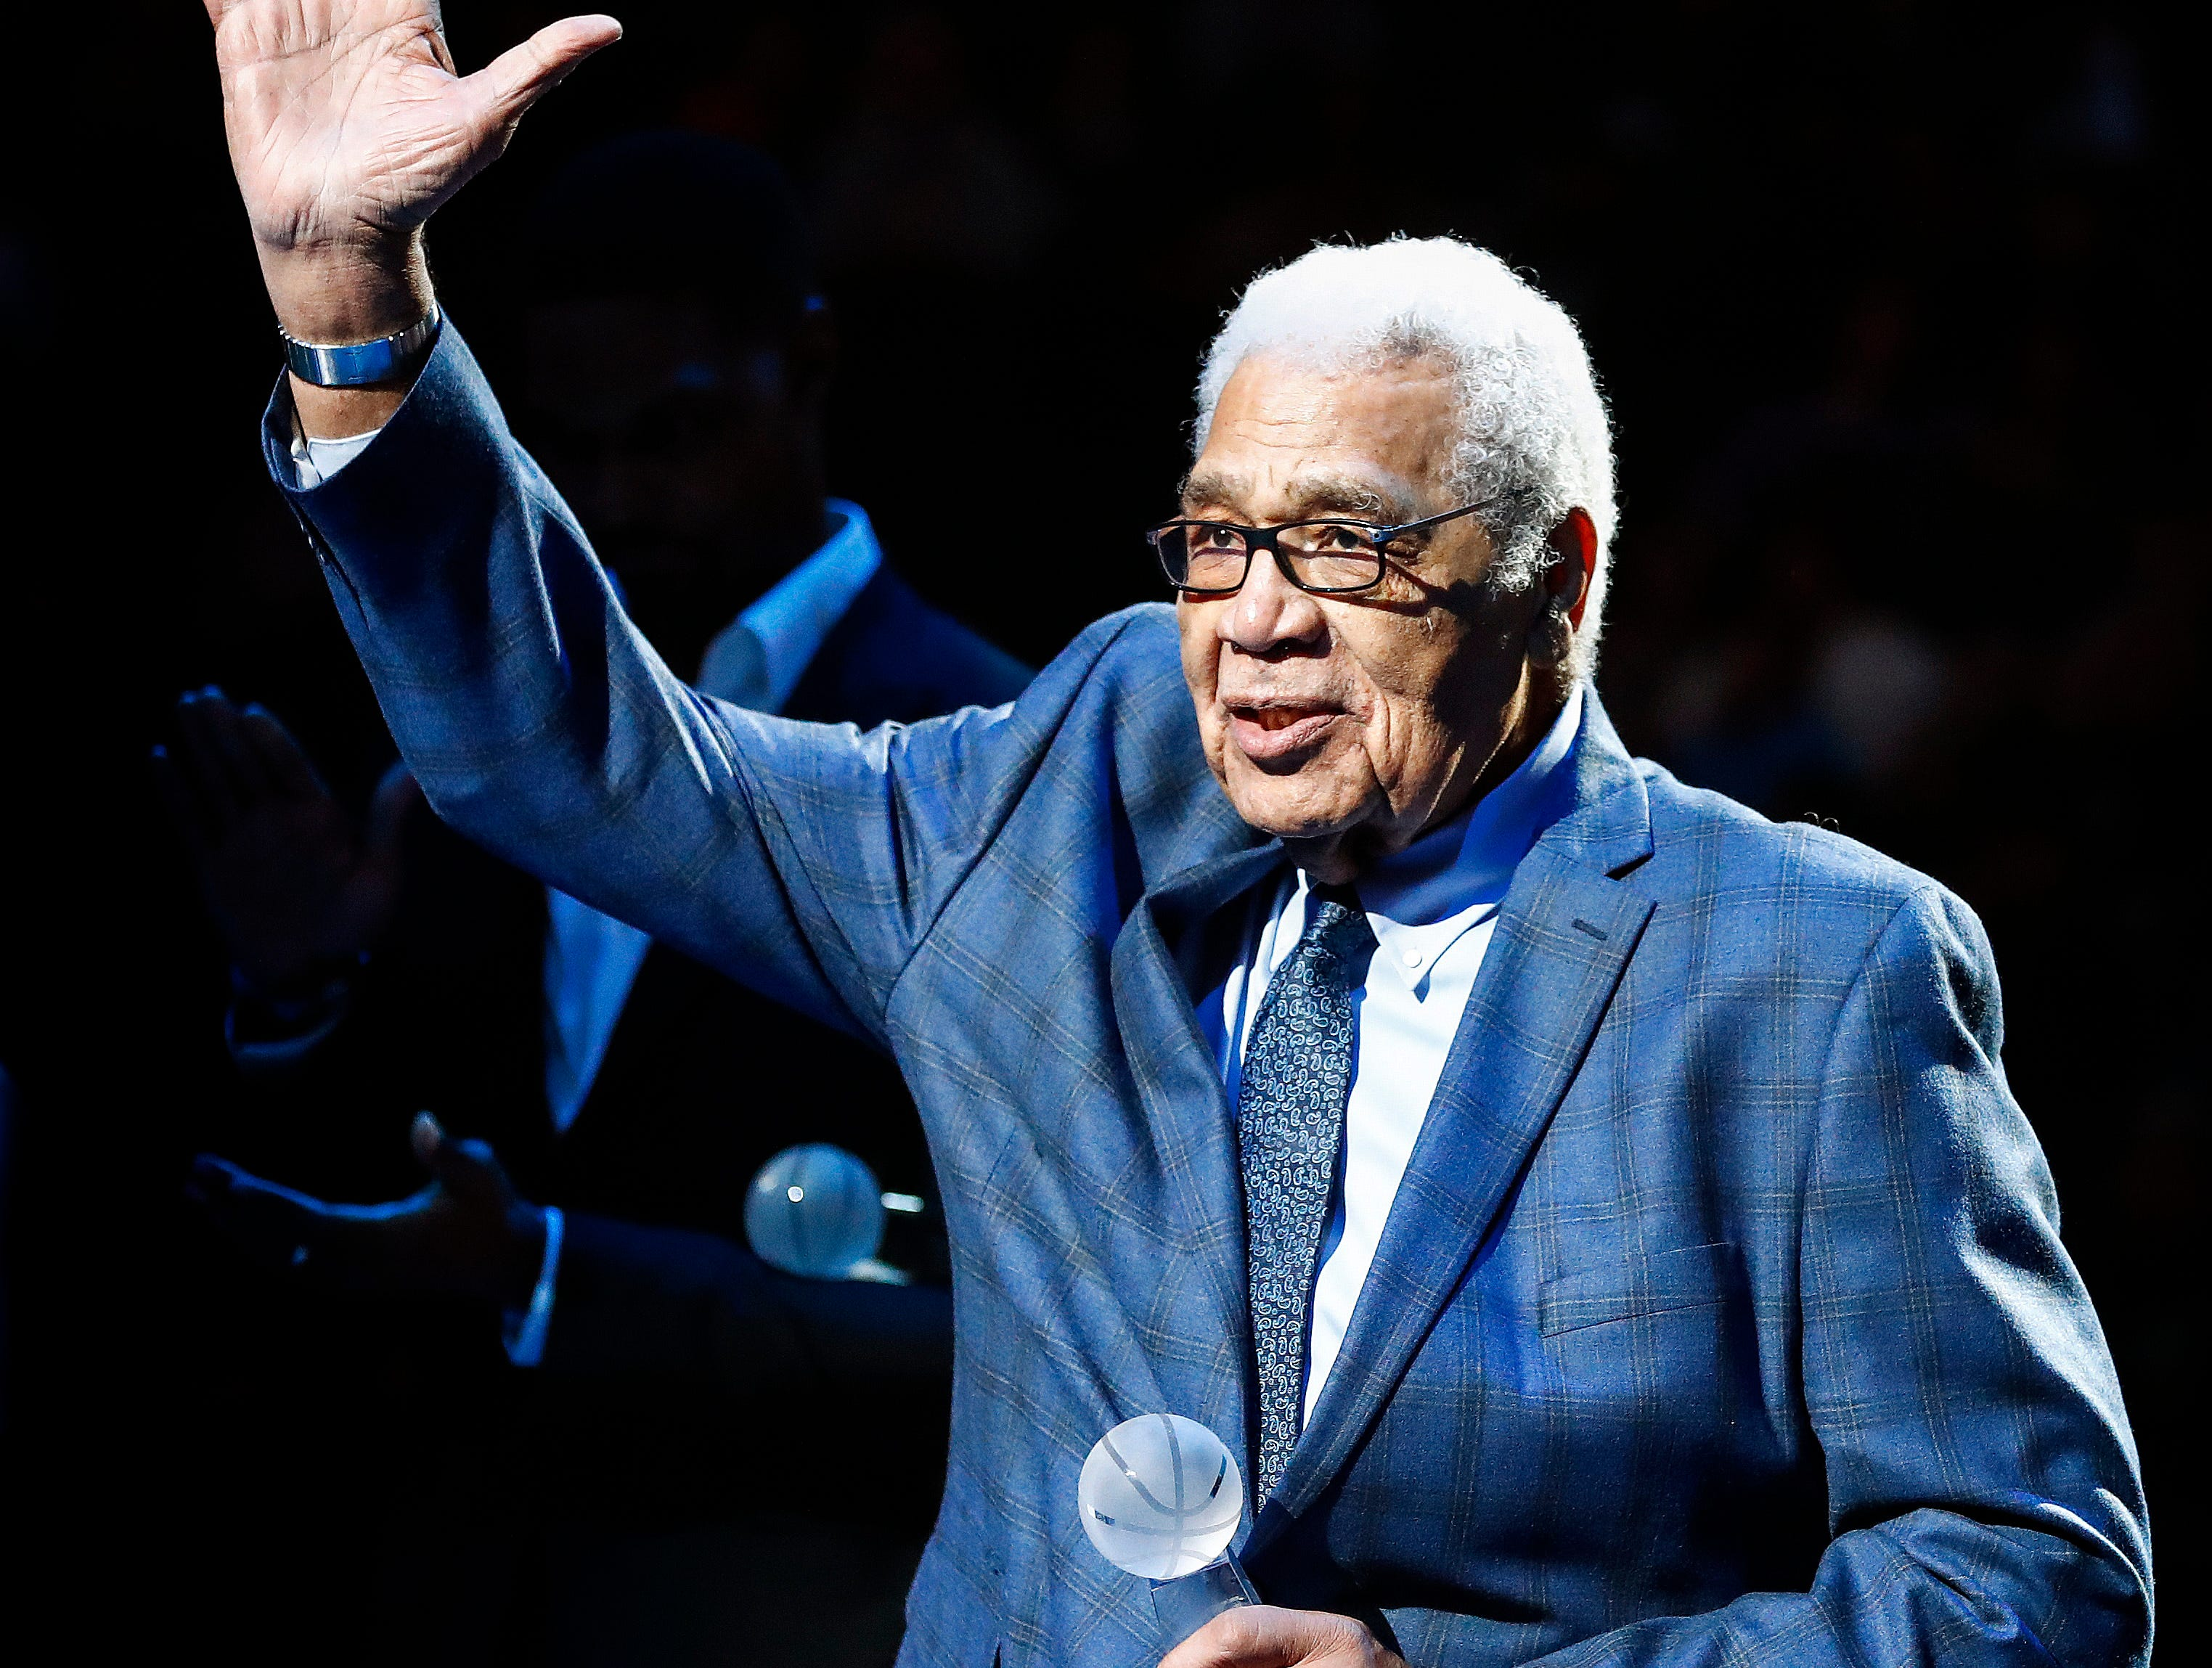 Former NBA player Wayne Embry receives the 14th Annual National Civil Rights Museum Sports Legacy Award before the Memphis Grizzlies take on the New Orleans Pelicans at the FedExForum in Memphis, Tenn., Monday, January 21, 2019.